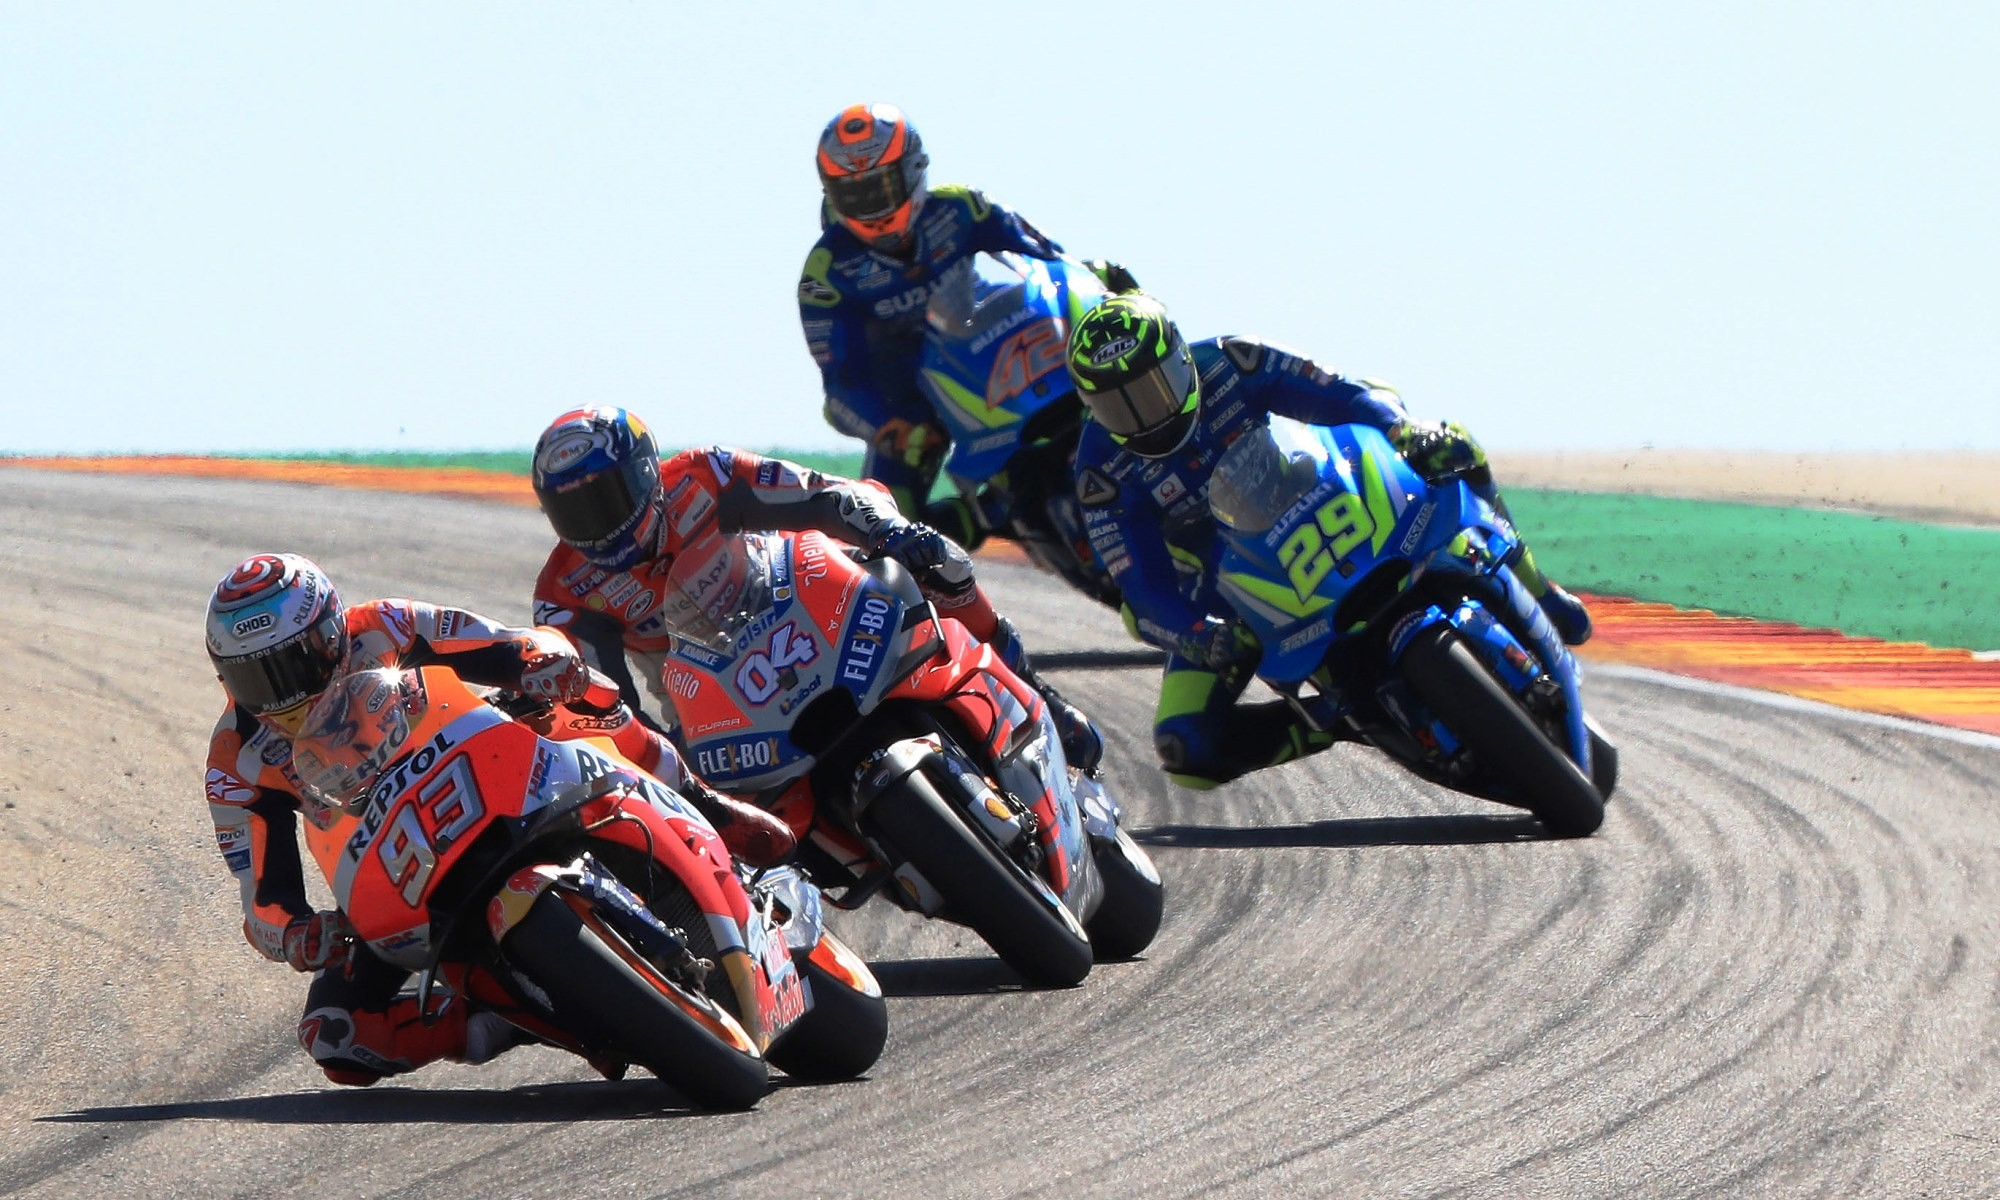 Marquez proved unbeatable at Aragon